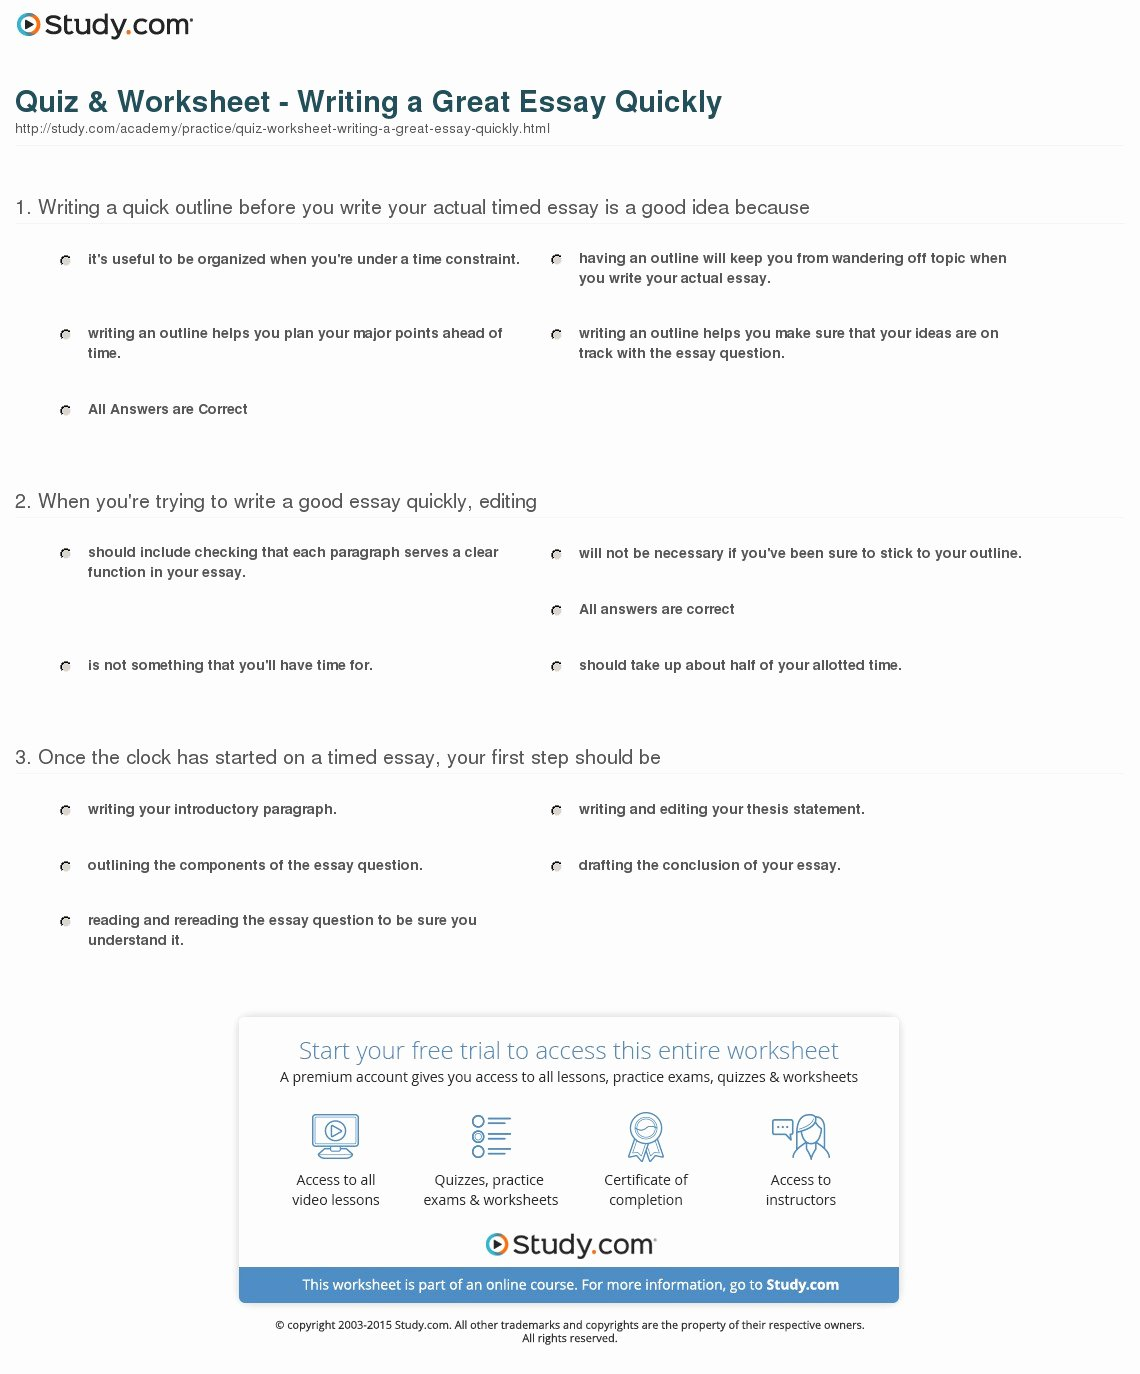 Thesis Statement Practice Worksheet Luxury Quiz & Worksheet Writing A Great Essay Quickly